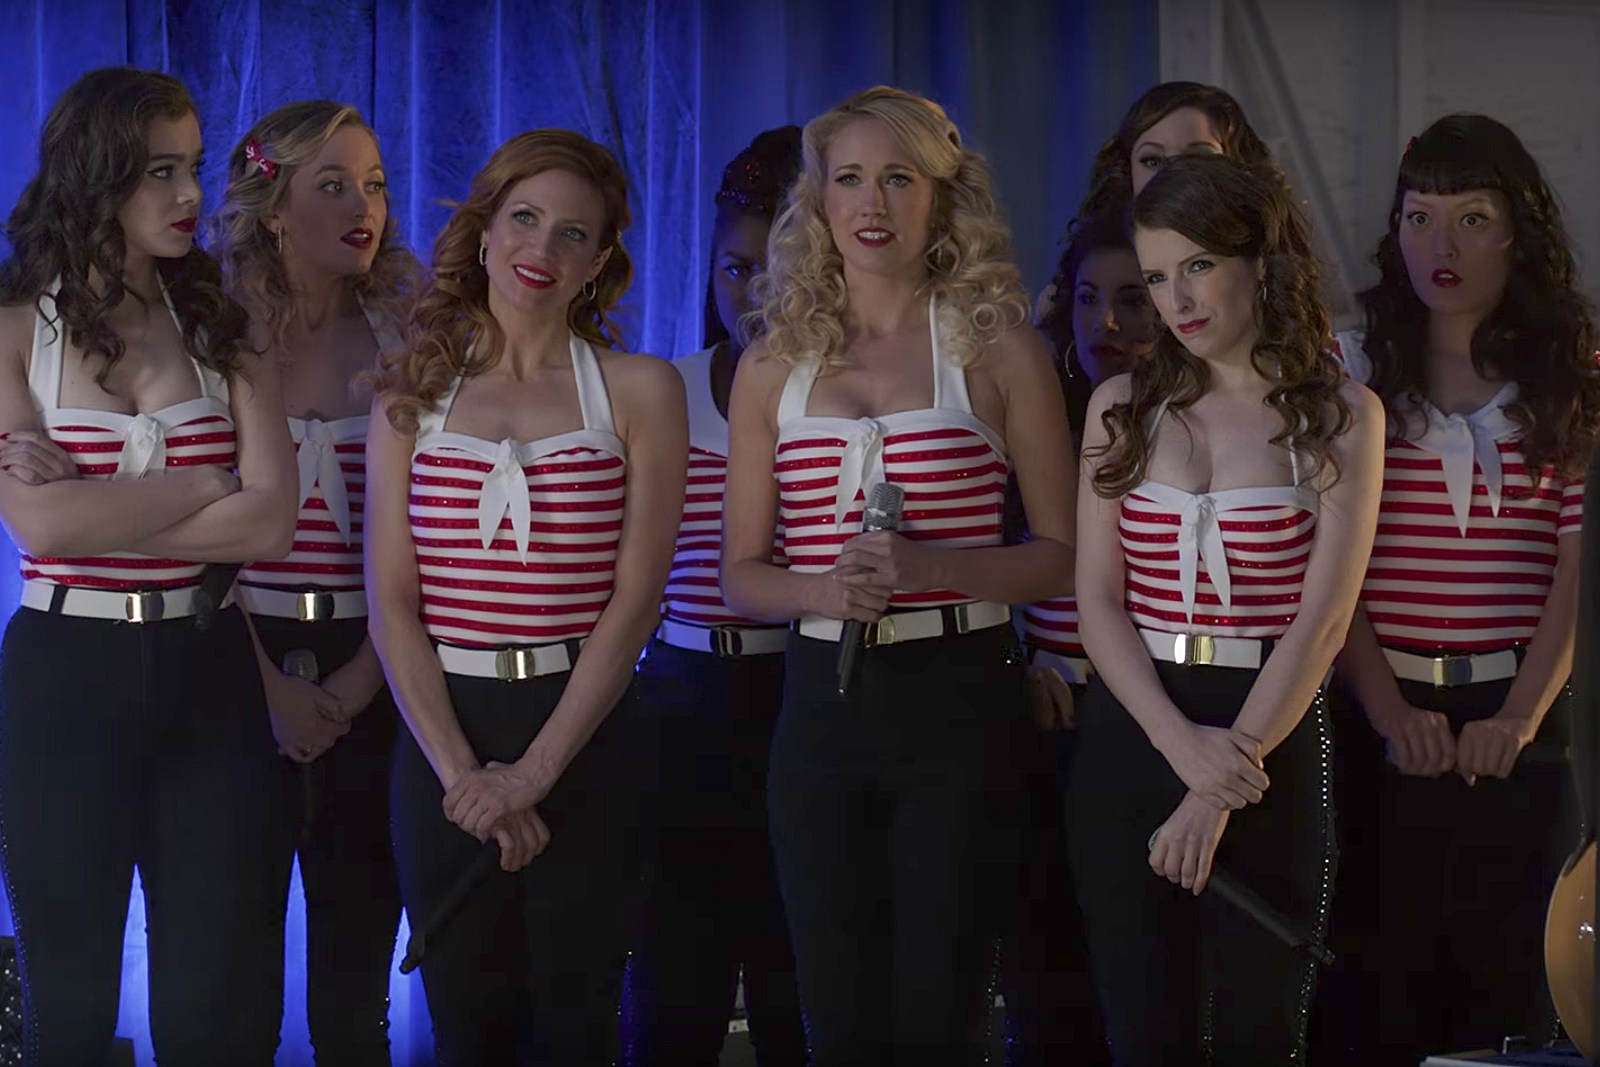 The Bellas Get One Last Gig in the 'Pitch Perfect 3' Trailer